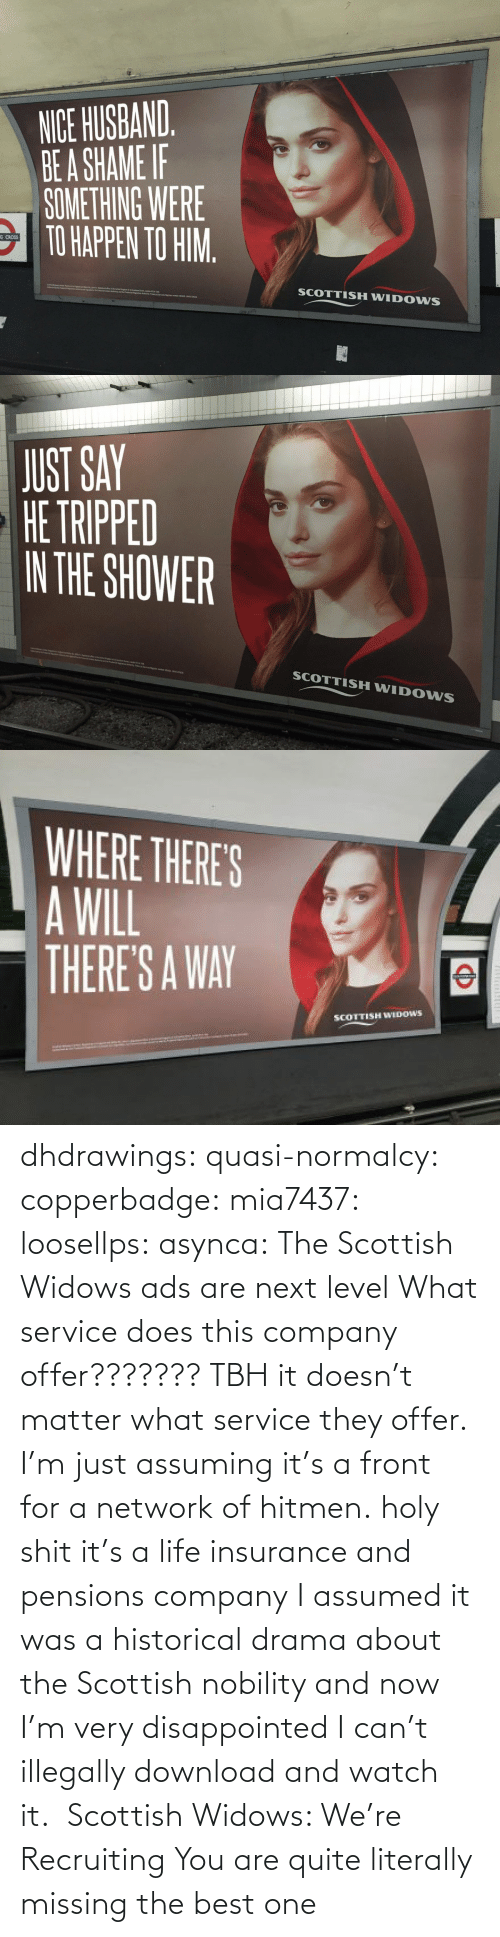 Disappointed, Life, and Target: dhdrawings:  quasi-normalcy:  copperbadge:  mia7437:  loosellps:  asynca: The Scottish Widows ads are next level What service does this company offer??????? TBH it doesn't matter what service they offer. I'm just assuming it's a front for a network of hitmen.  holy shit it's a life insurance and pensions company  I assumed it was a historical drama about the Scottish nobility and now I'm very disappointed I can't illegally download and watch it.     Scottish Widows: We're Recruiting    You are quite literally missing the best one